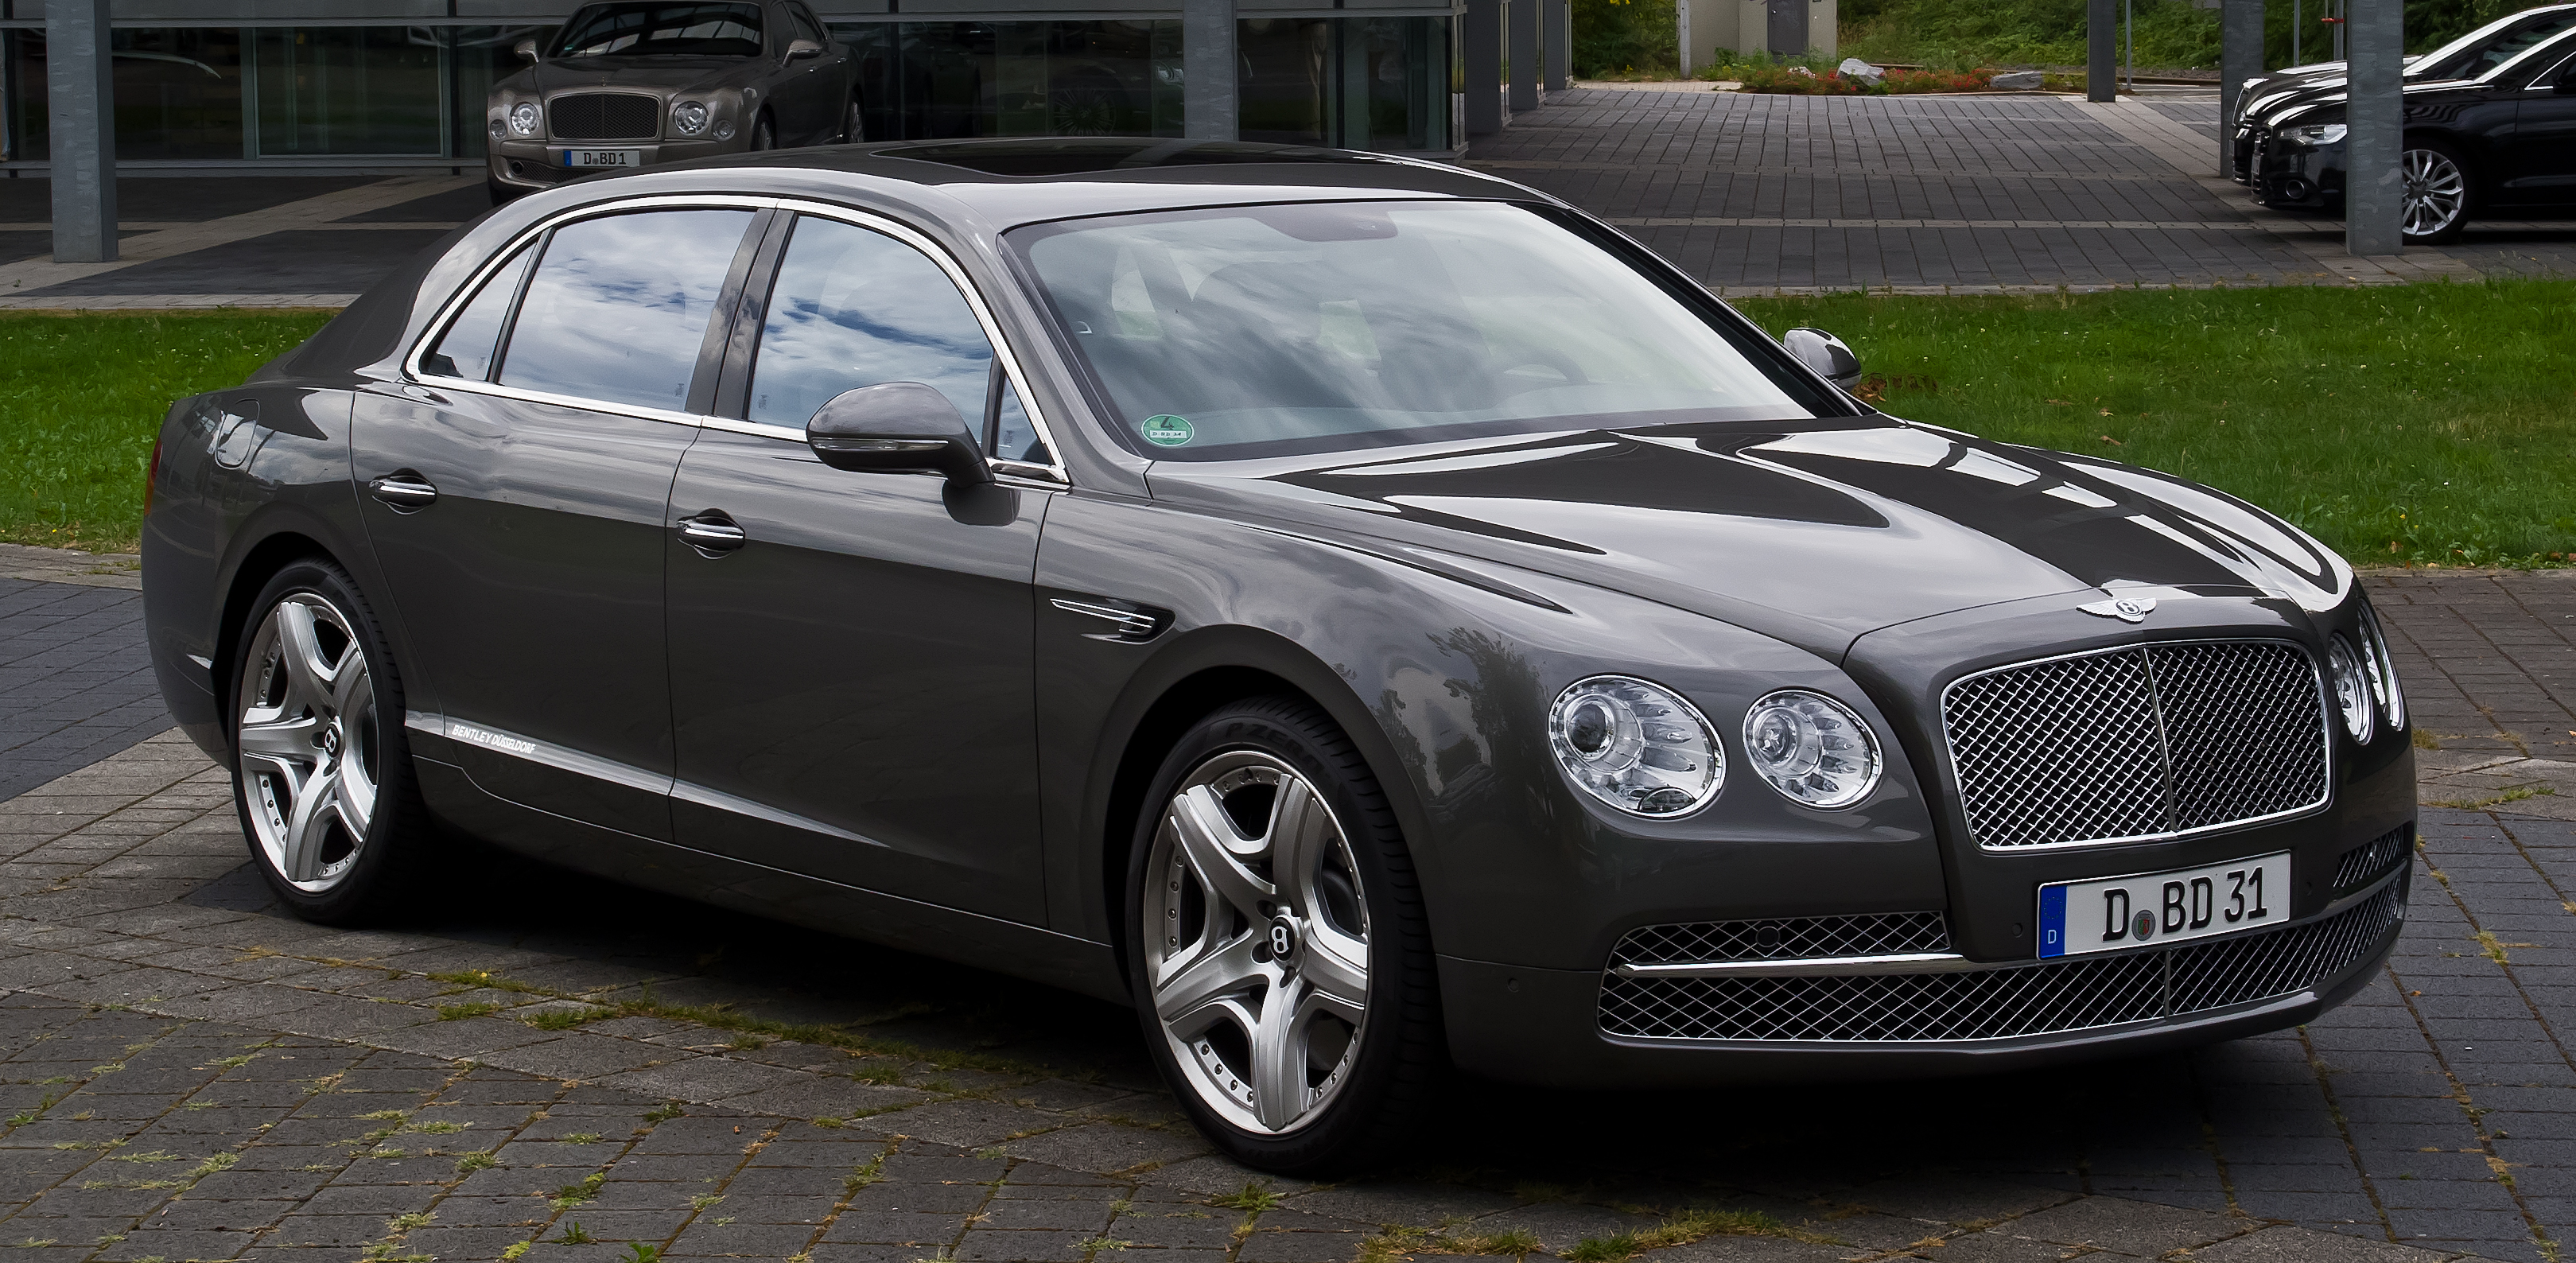 2008 bentley continental flying spur pictures information and specs auto. Black Bedroom Furniture Sets. Home Design Ideas